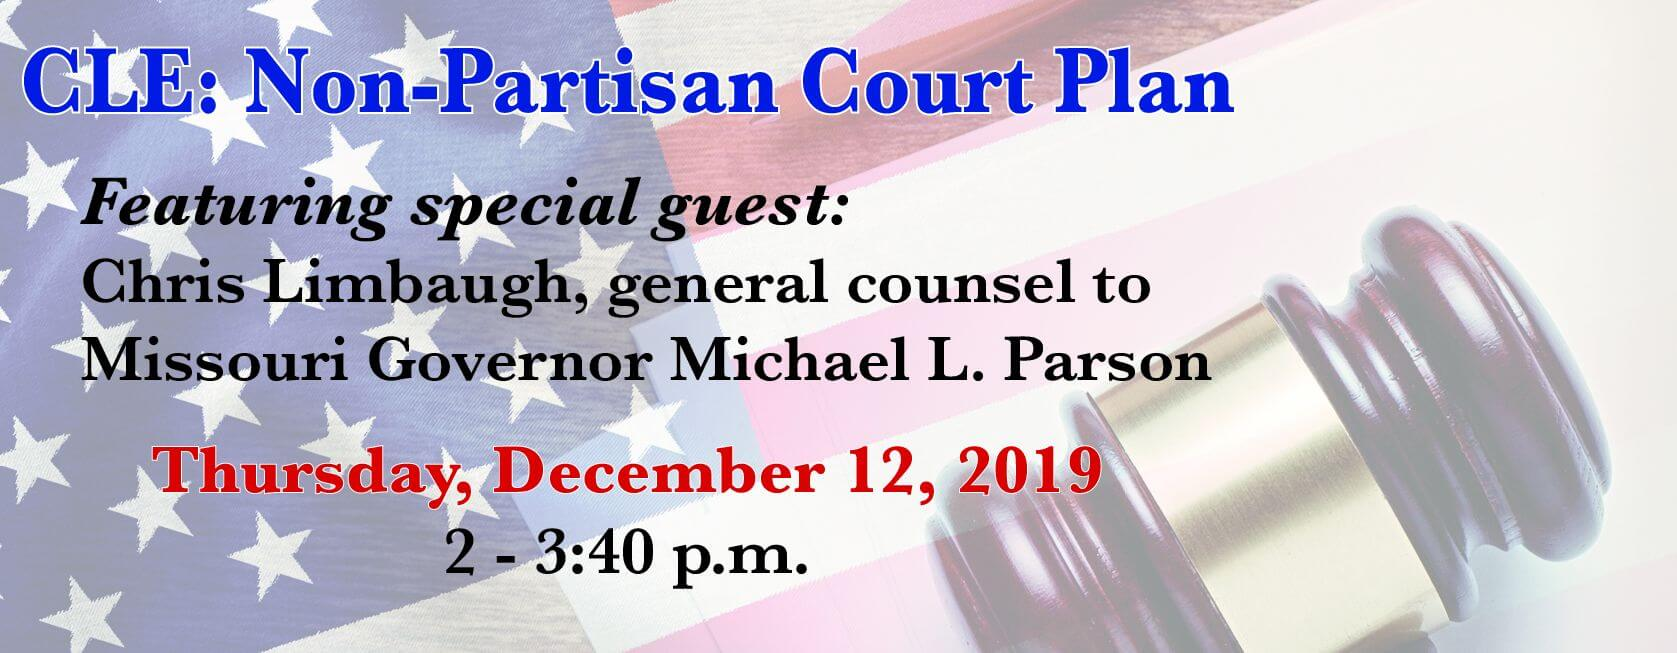 Non-Partison Court Plan CLE, featuring Chris Limbaugh, is December 12. Register now!